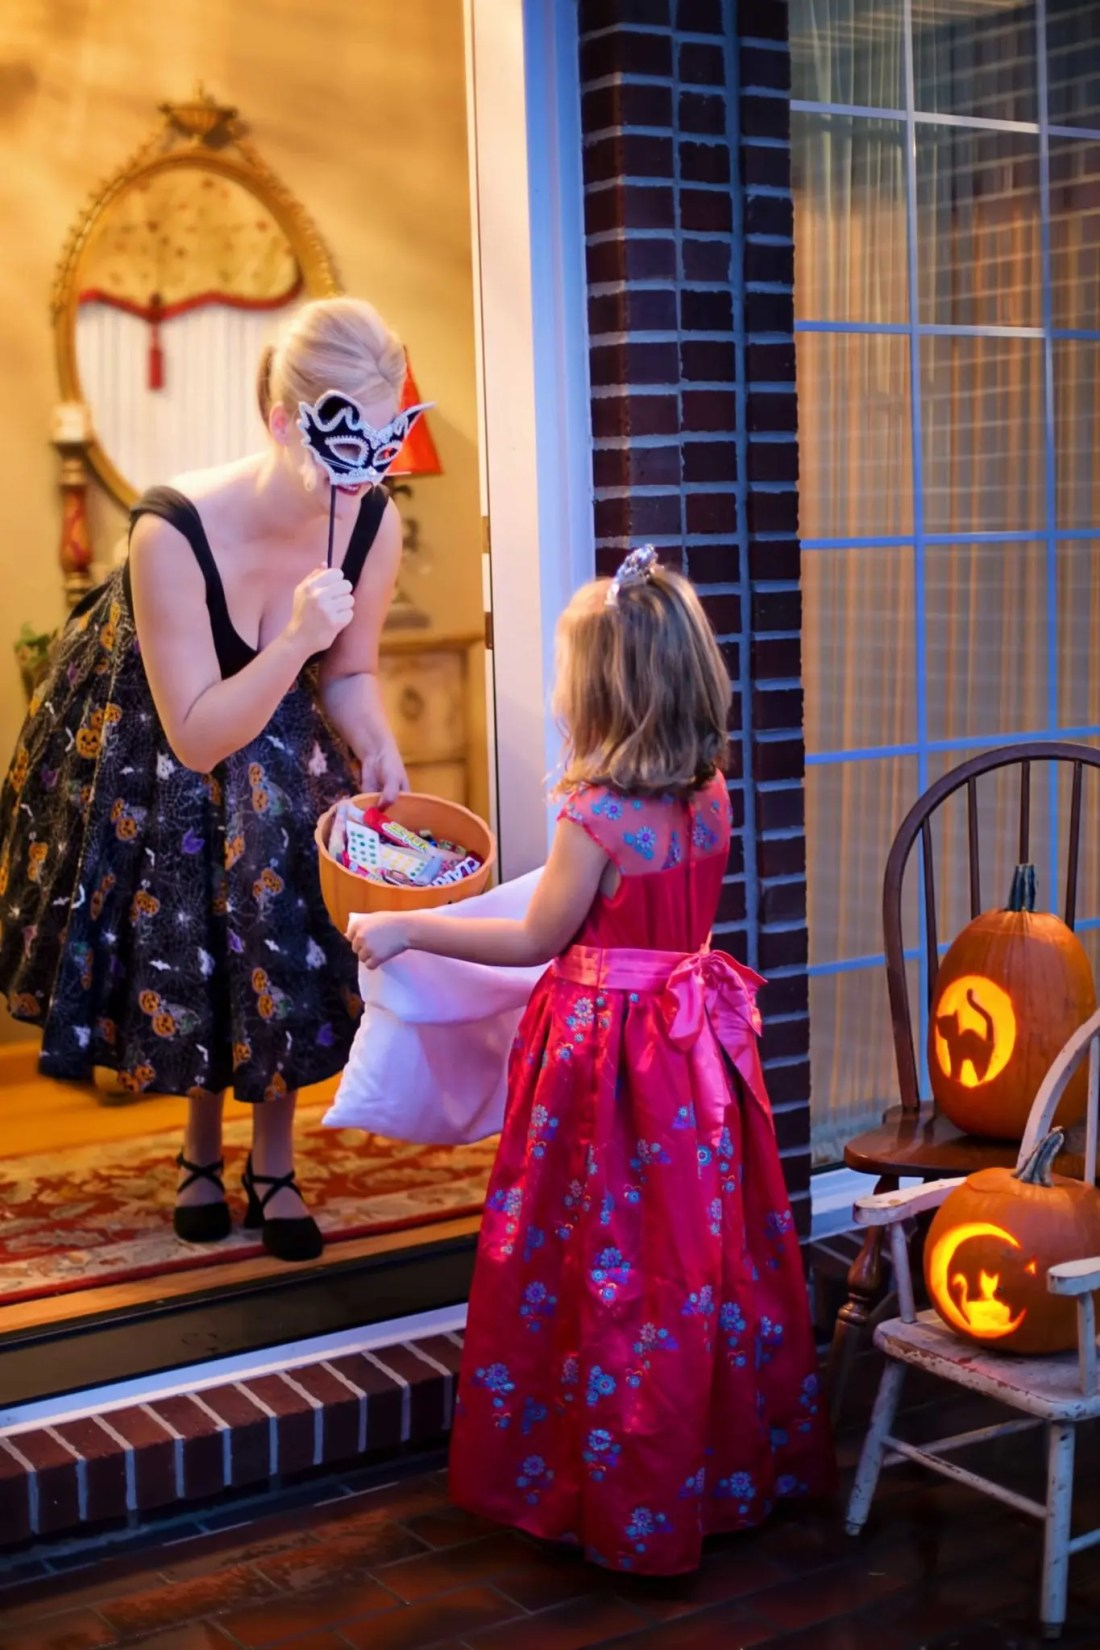 Why is Halloween hard for children with Autism? Learn why Halloween can be scary for autistic children as well as How to make Halloween Autism Friendly